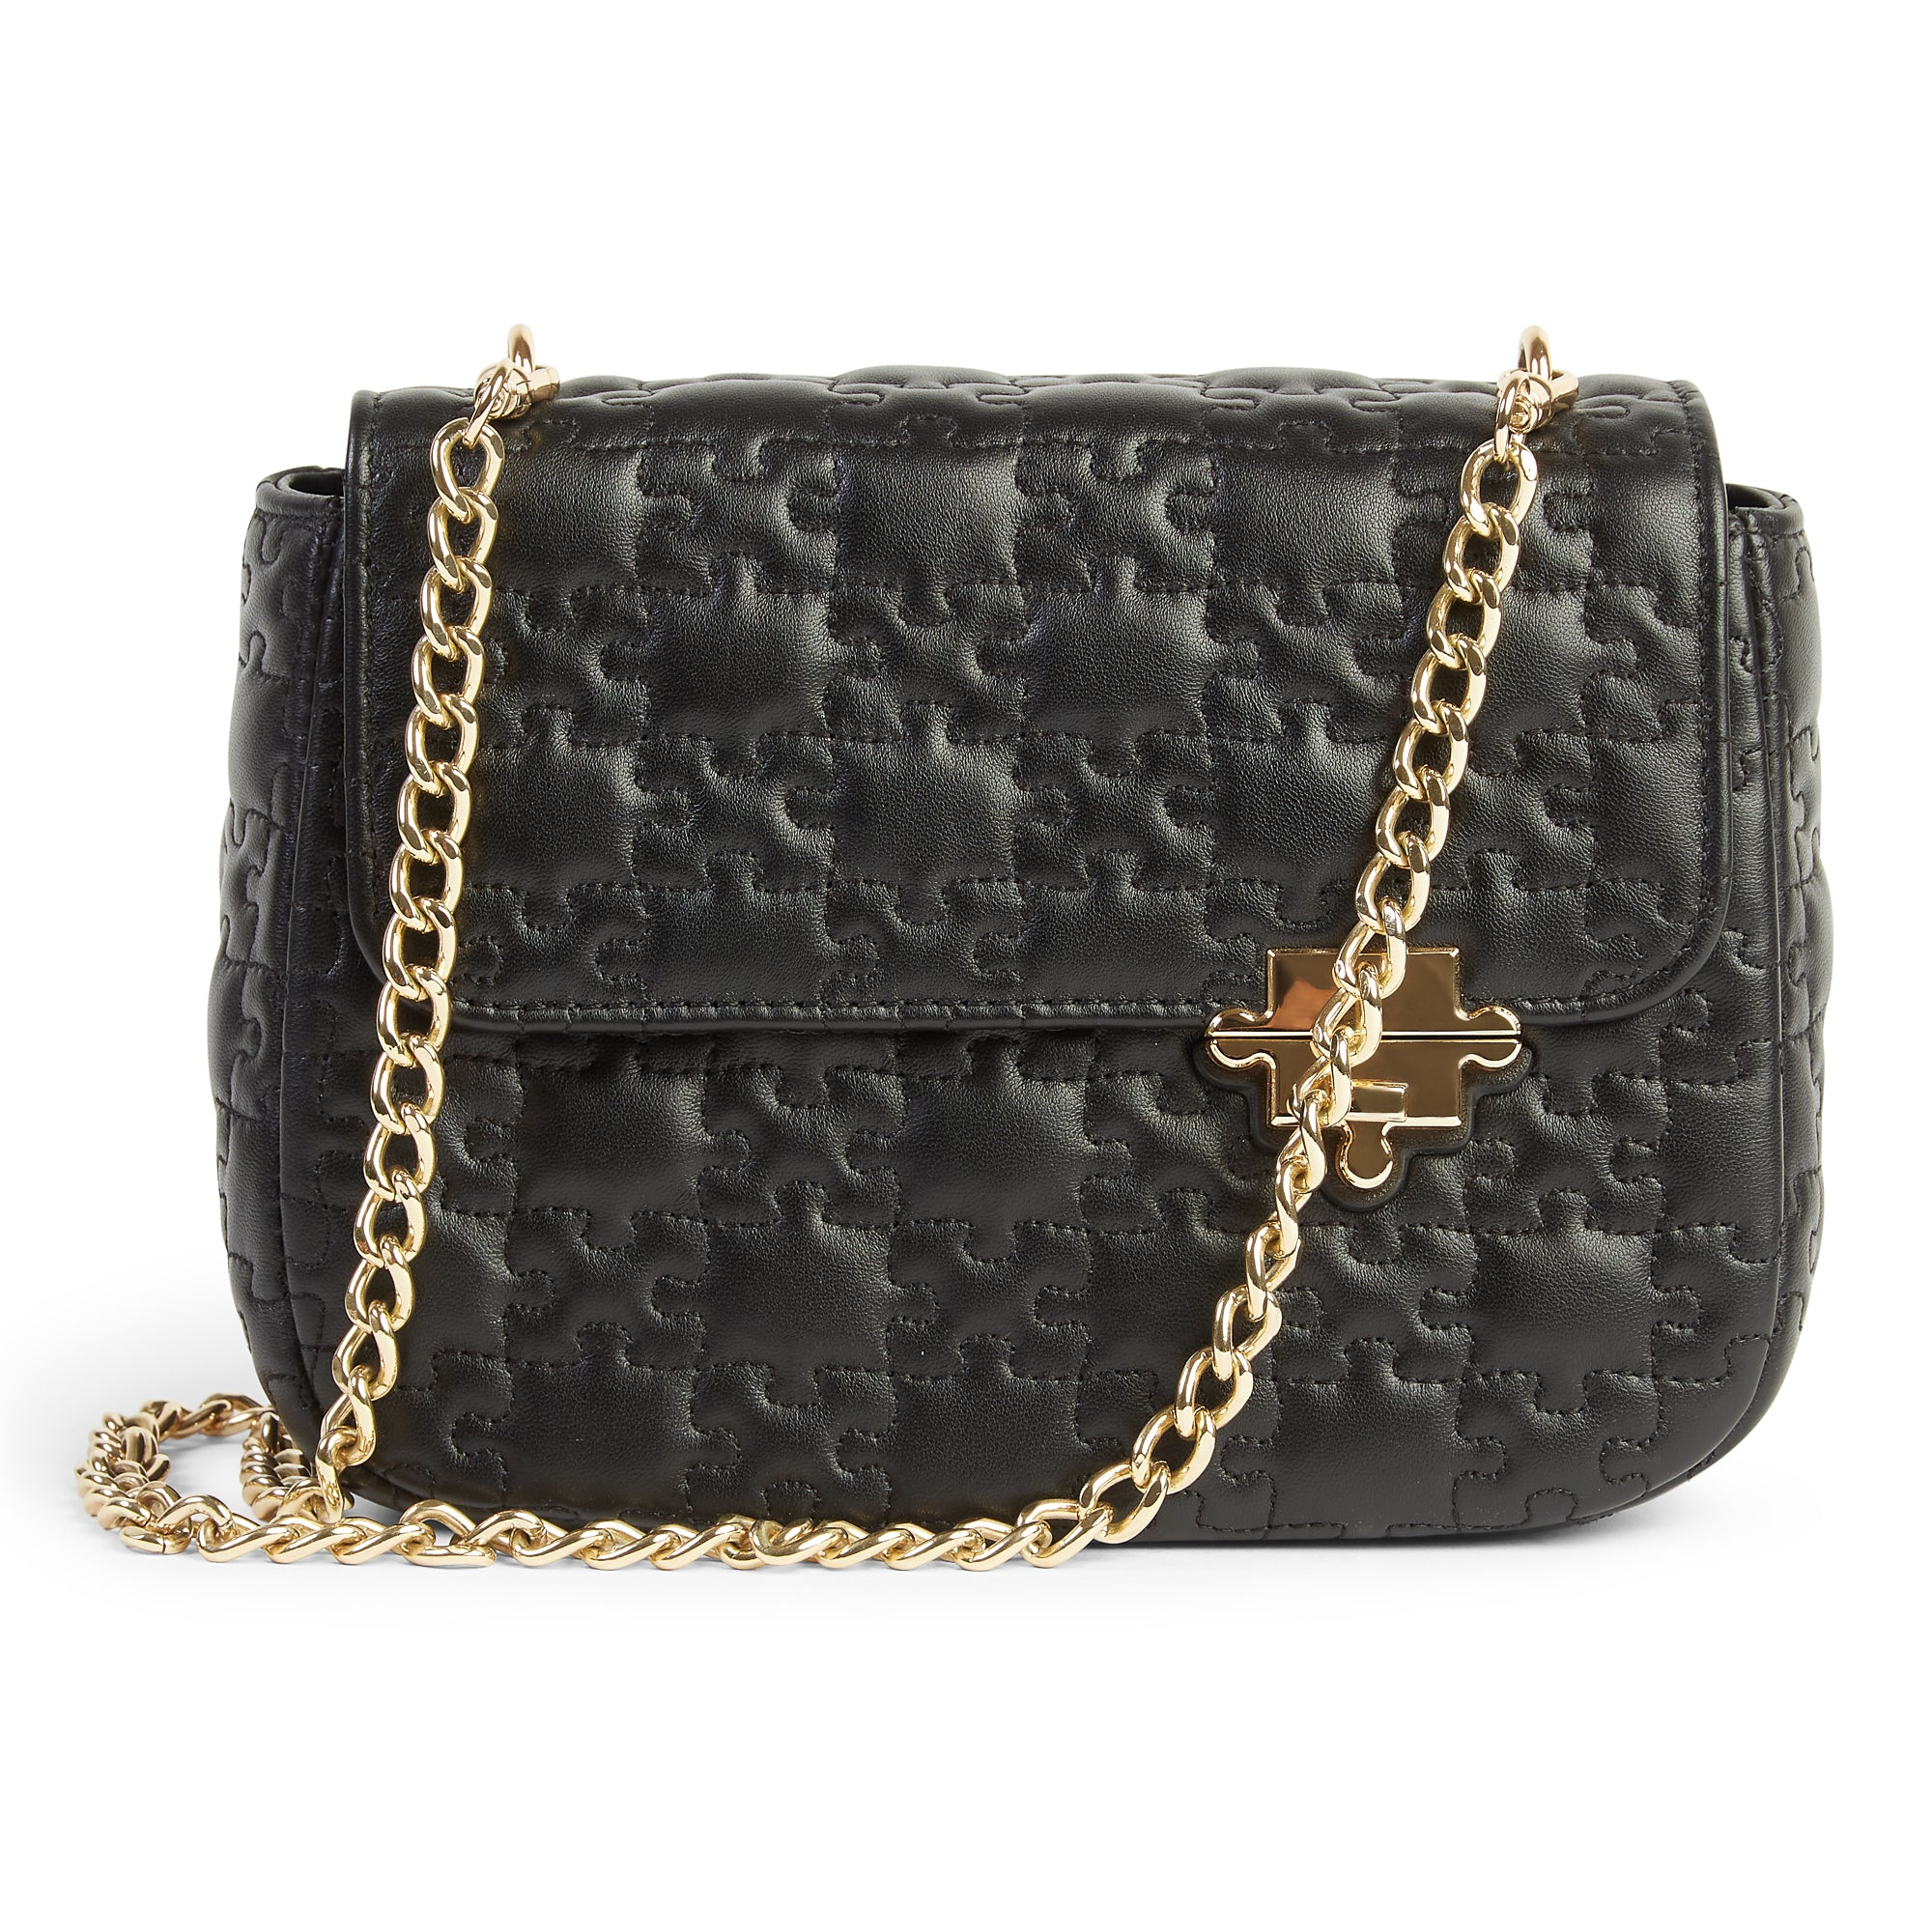 DARASIMI LAMBSKIN CHAIN BAG